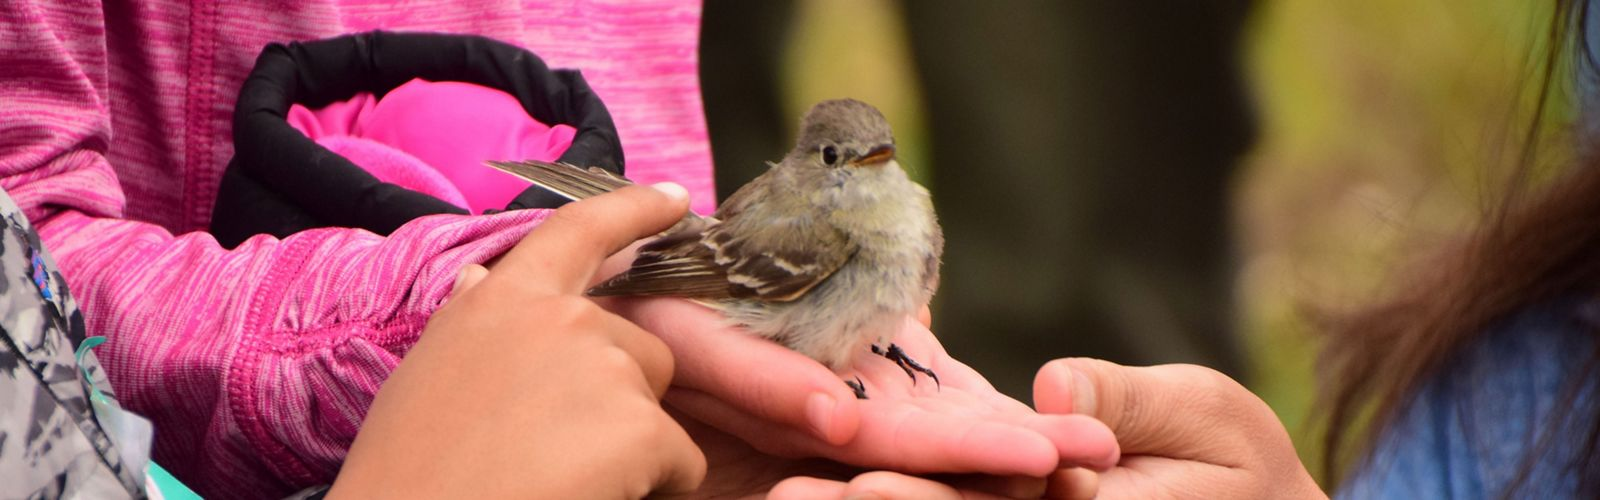 Small bird being identified at the 2018 BioBlitz at TNC's Tensleep Preserve in Wyoming.